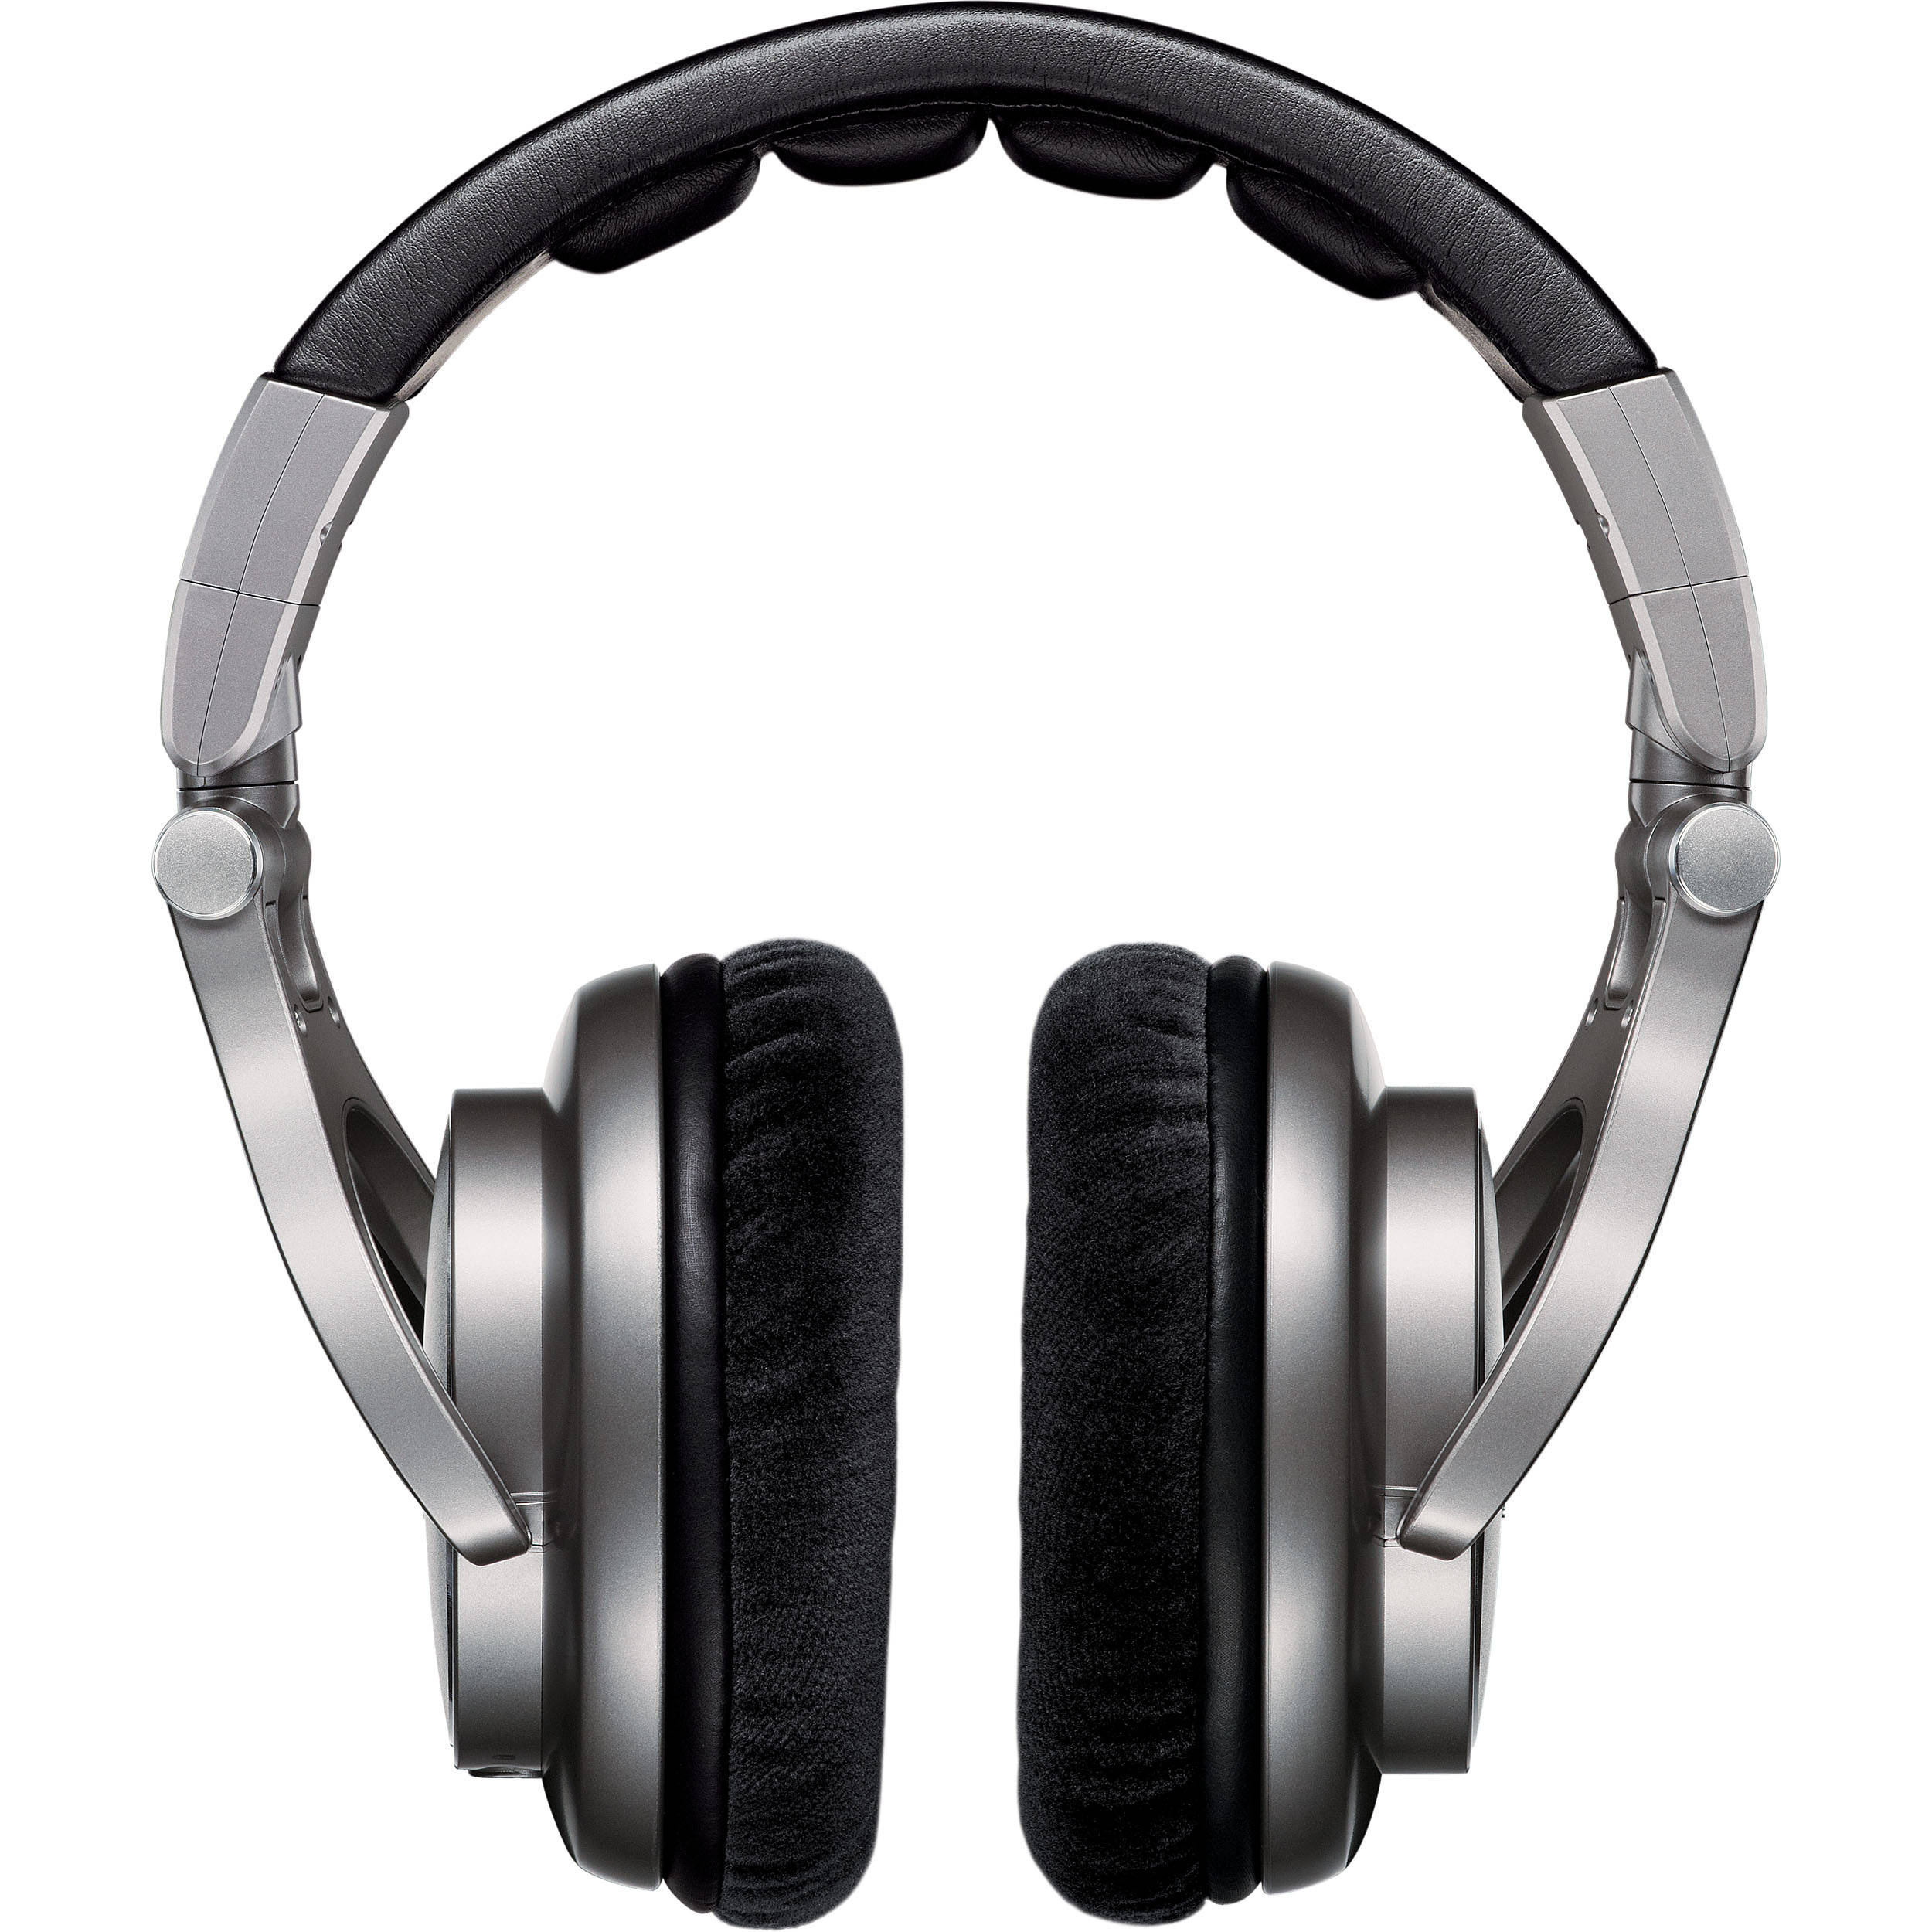 Shure SRH940 Reference Studio Headphones